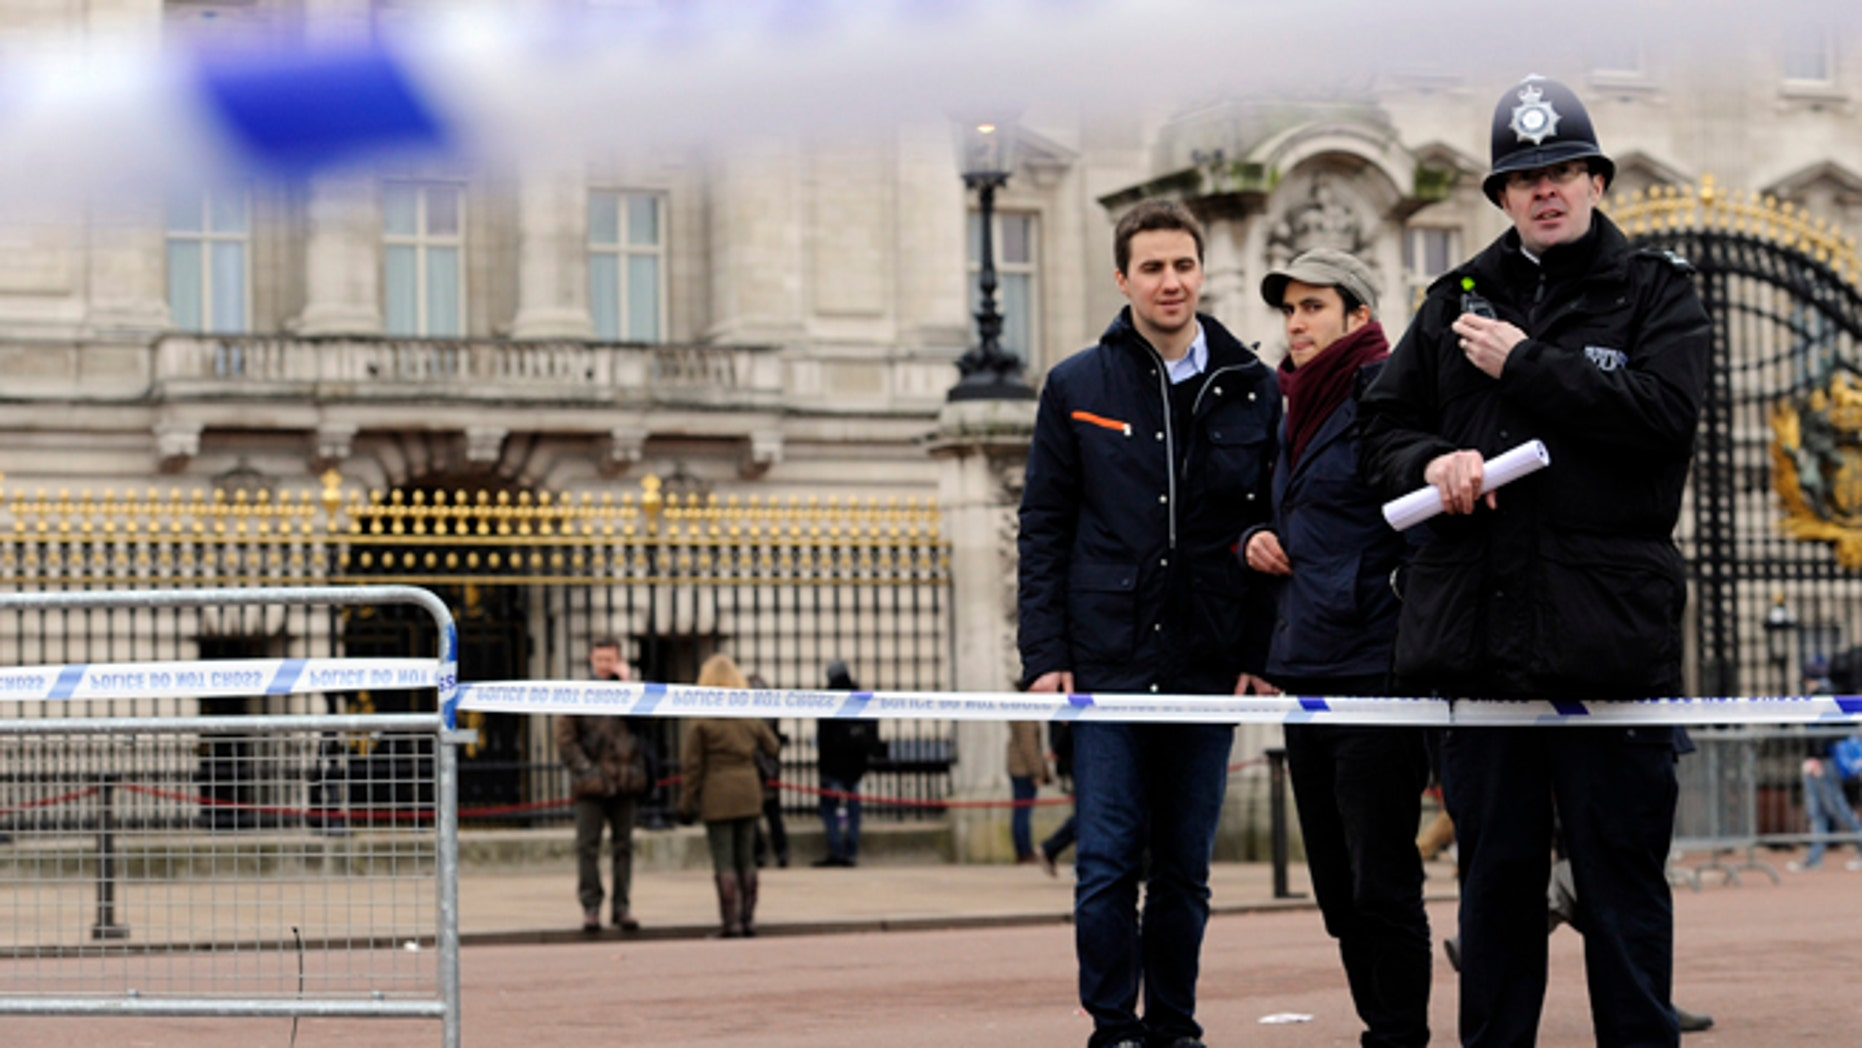 Feb. 3, 2013: A cornered off area containing knives, a hat and Taser wire outside Buckingham Palace in central London after a man armed with two knives was stunned by police.